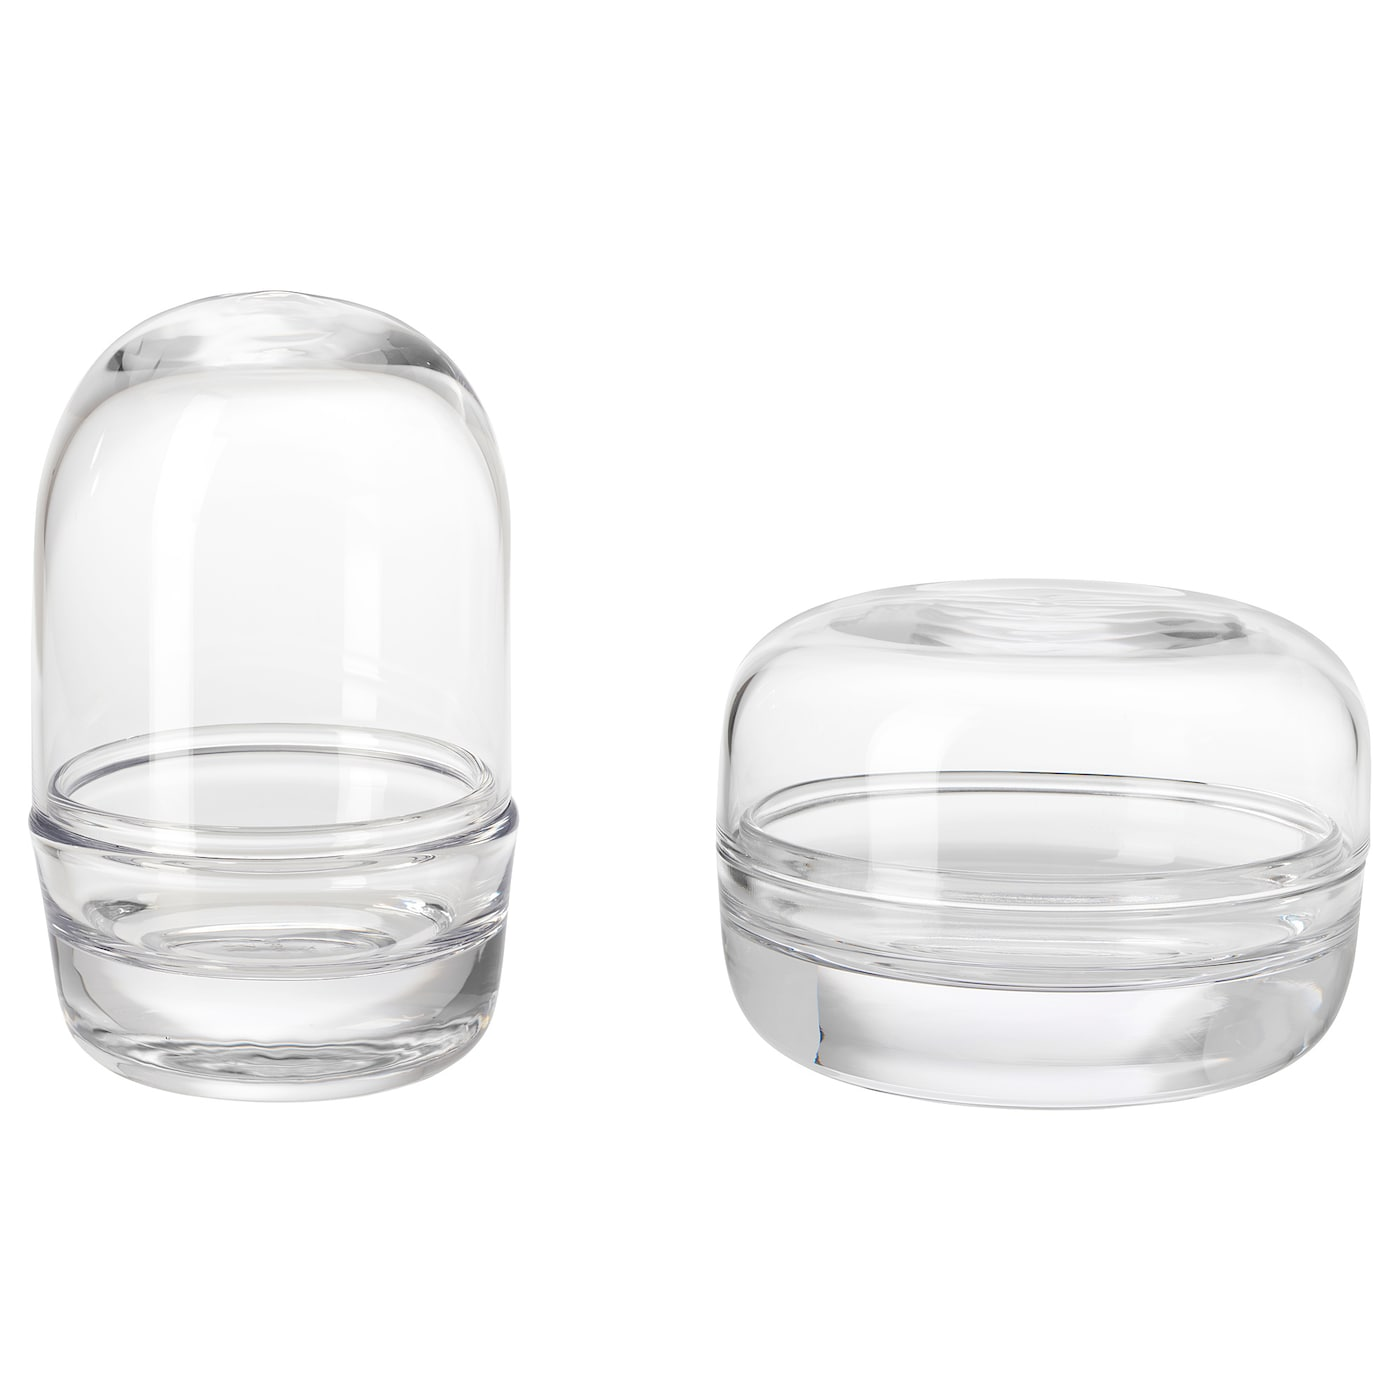 IKEA SAMMANHANG glass dome with base, set of 2